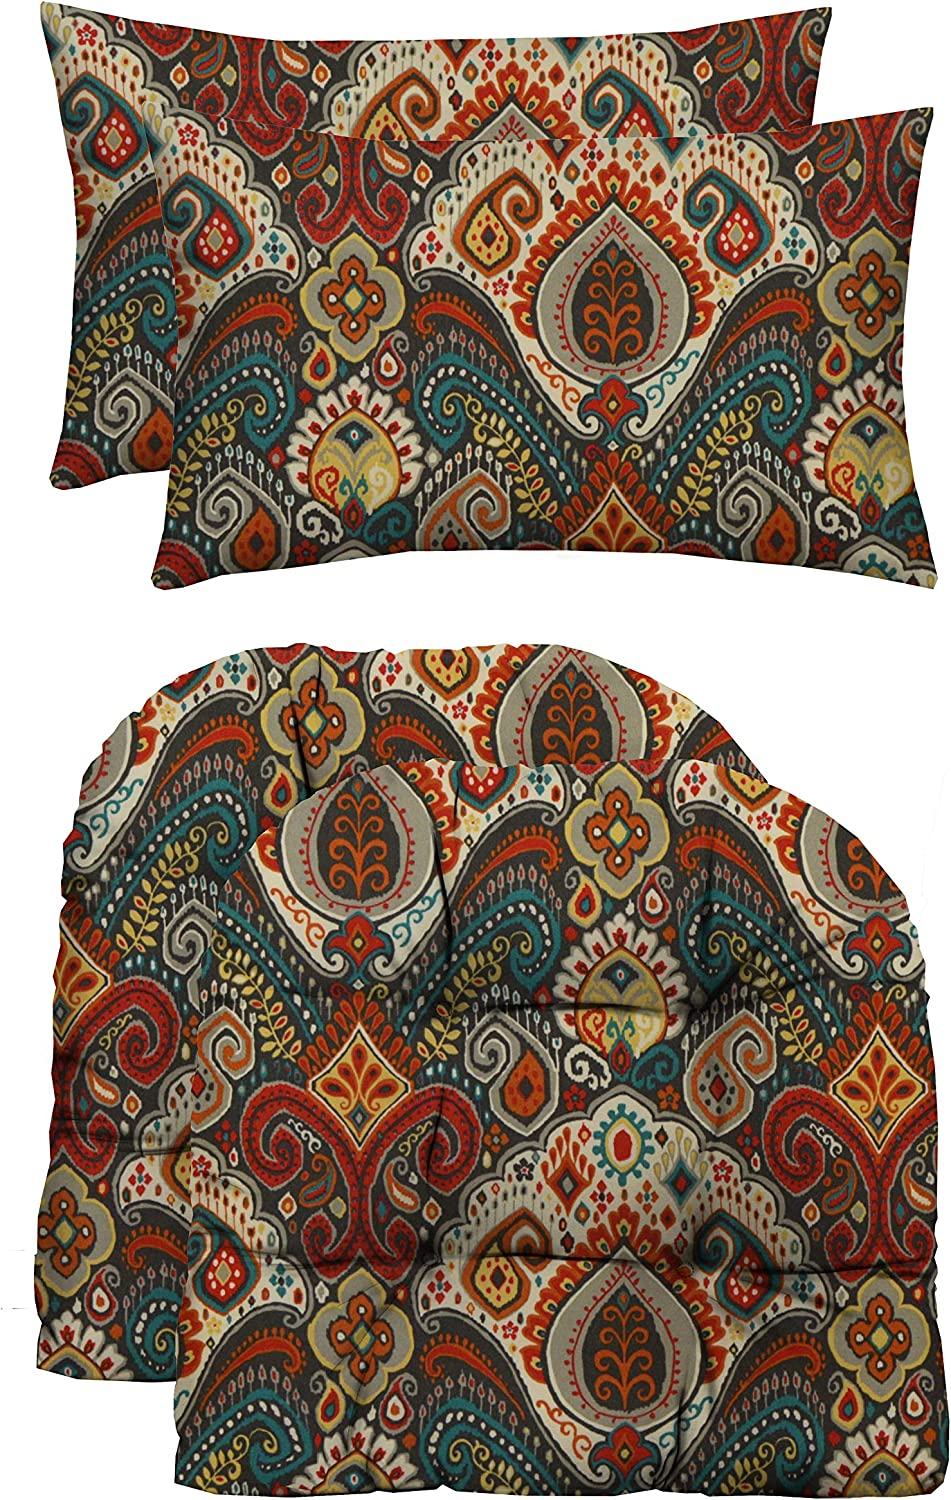 RSH Décor Indoor Outdoor Decorative Tufted U-Shape Chair Cushions & Bonus Pillows for Wicker Furniture (2 - (21